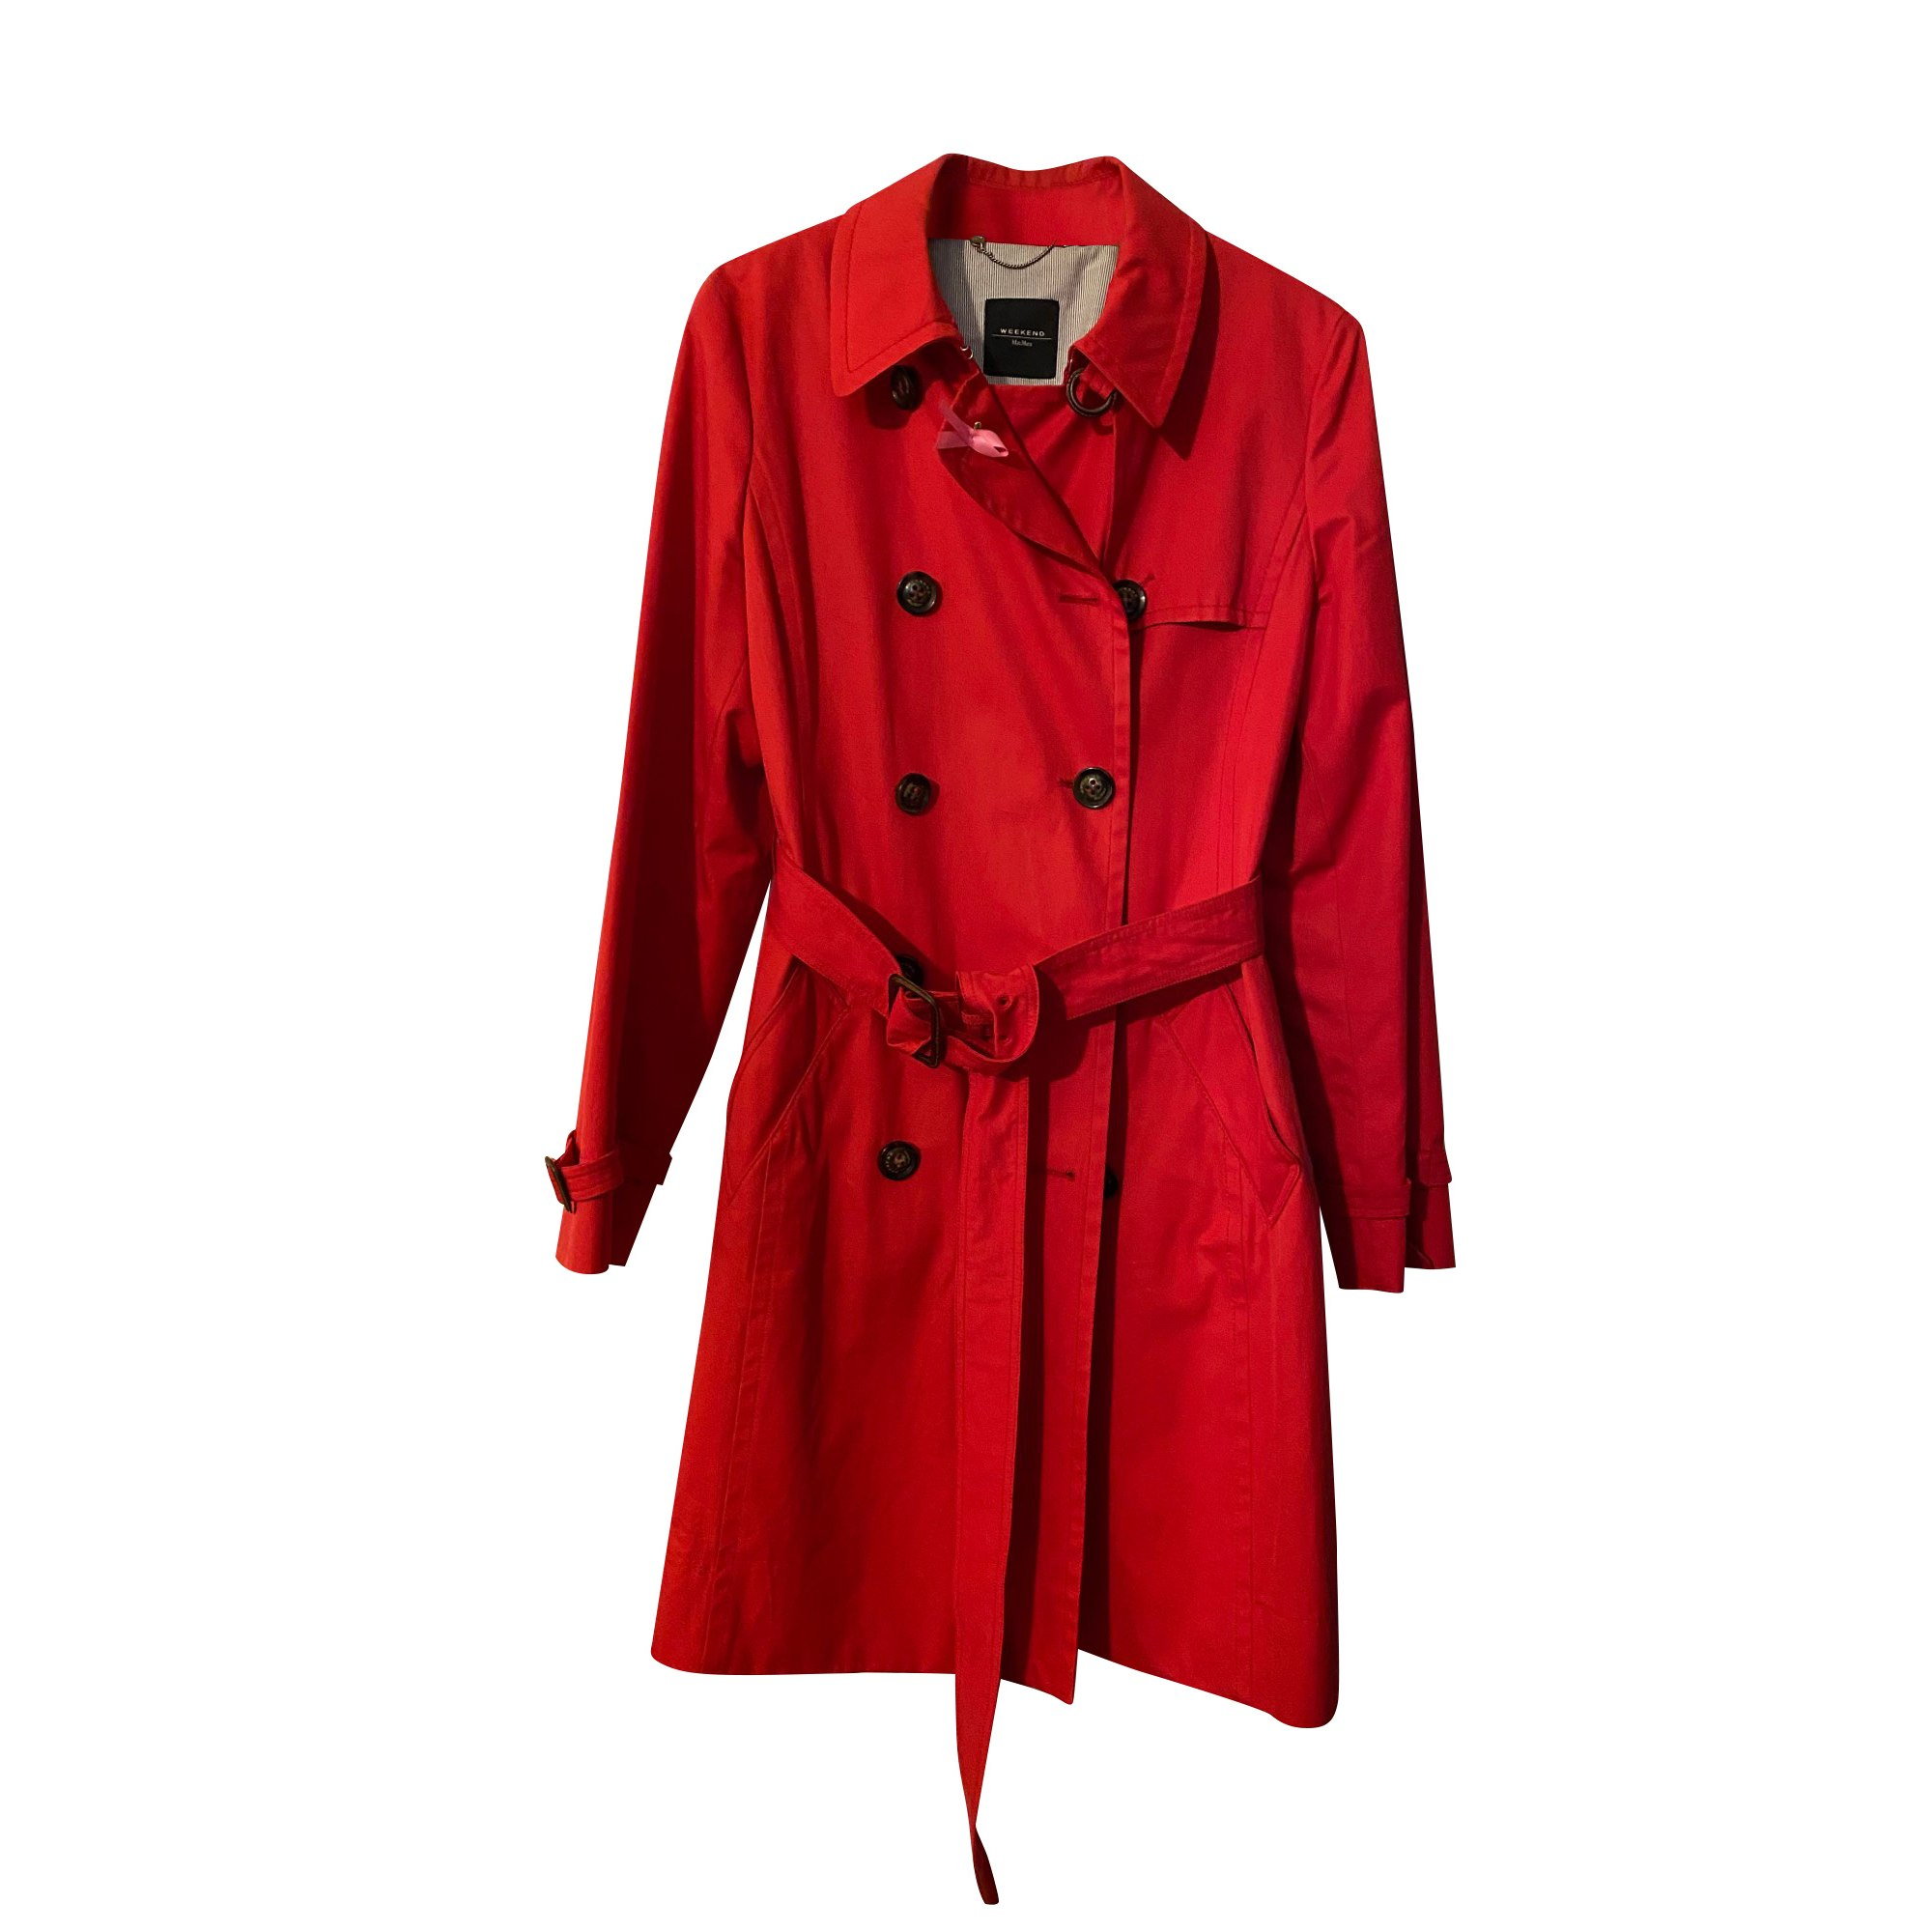 Imperméable, trench WEEKEND MAX MARA Rouge, bordeaux